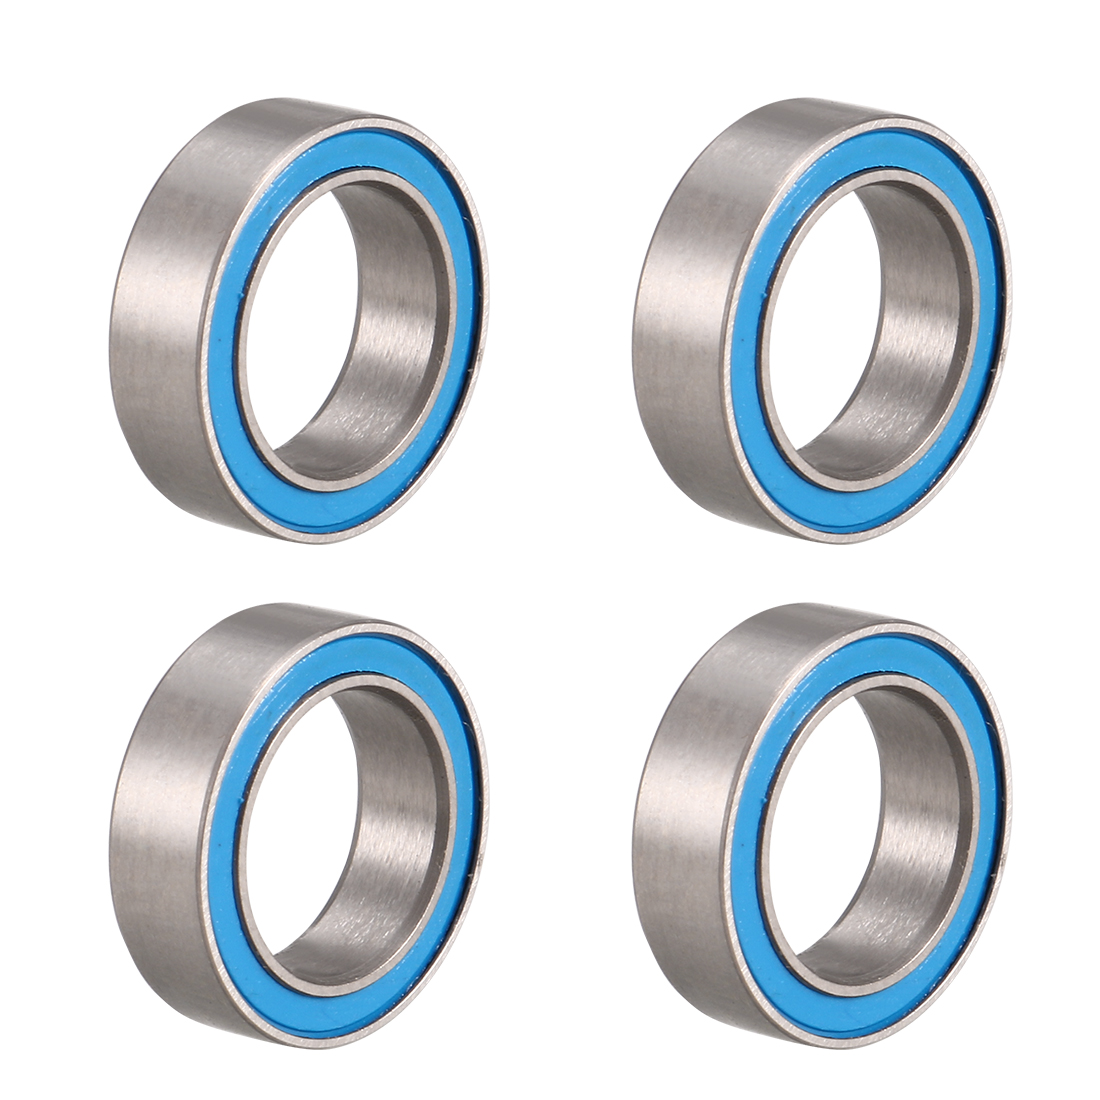 MR128-2RS Ball Bearing 8x12x3.5mm Double Sealed ABEC-3 Bearings 4pcs